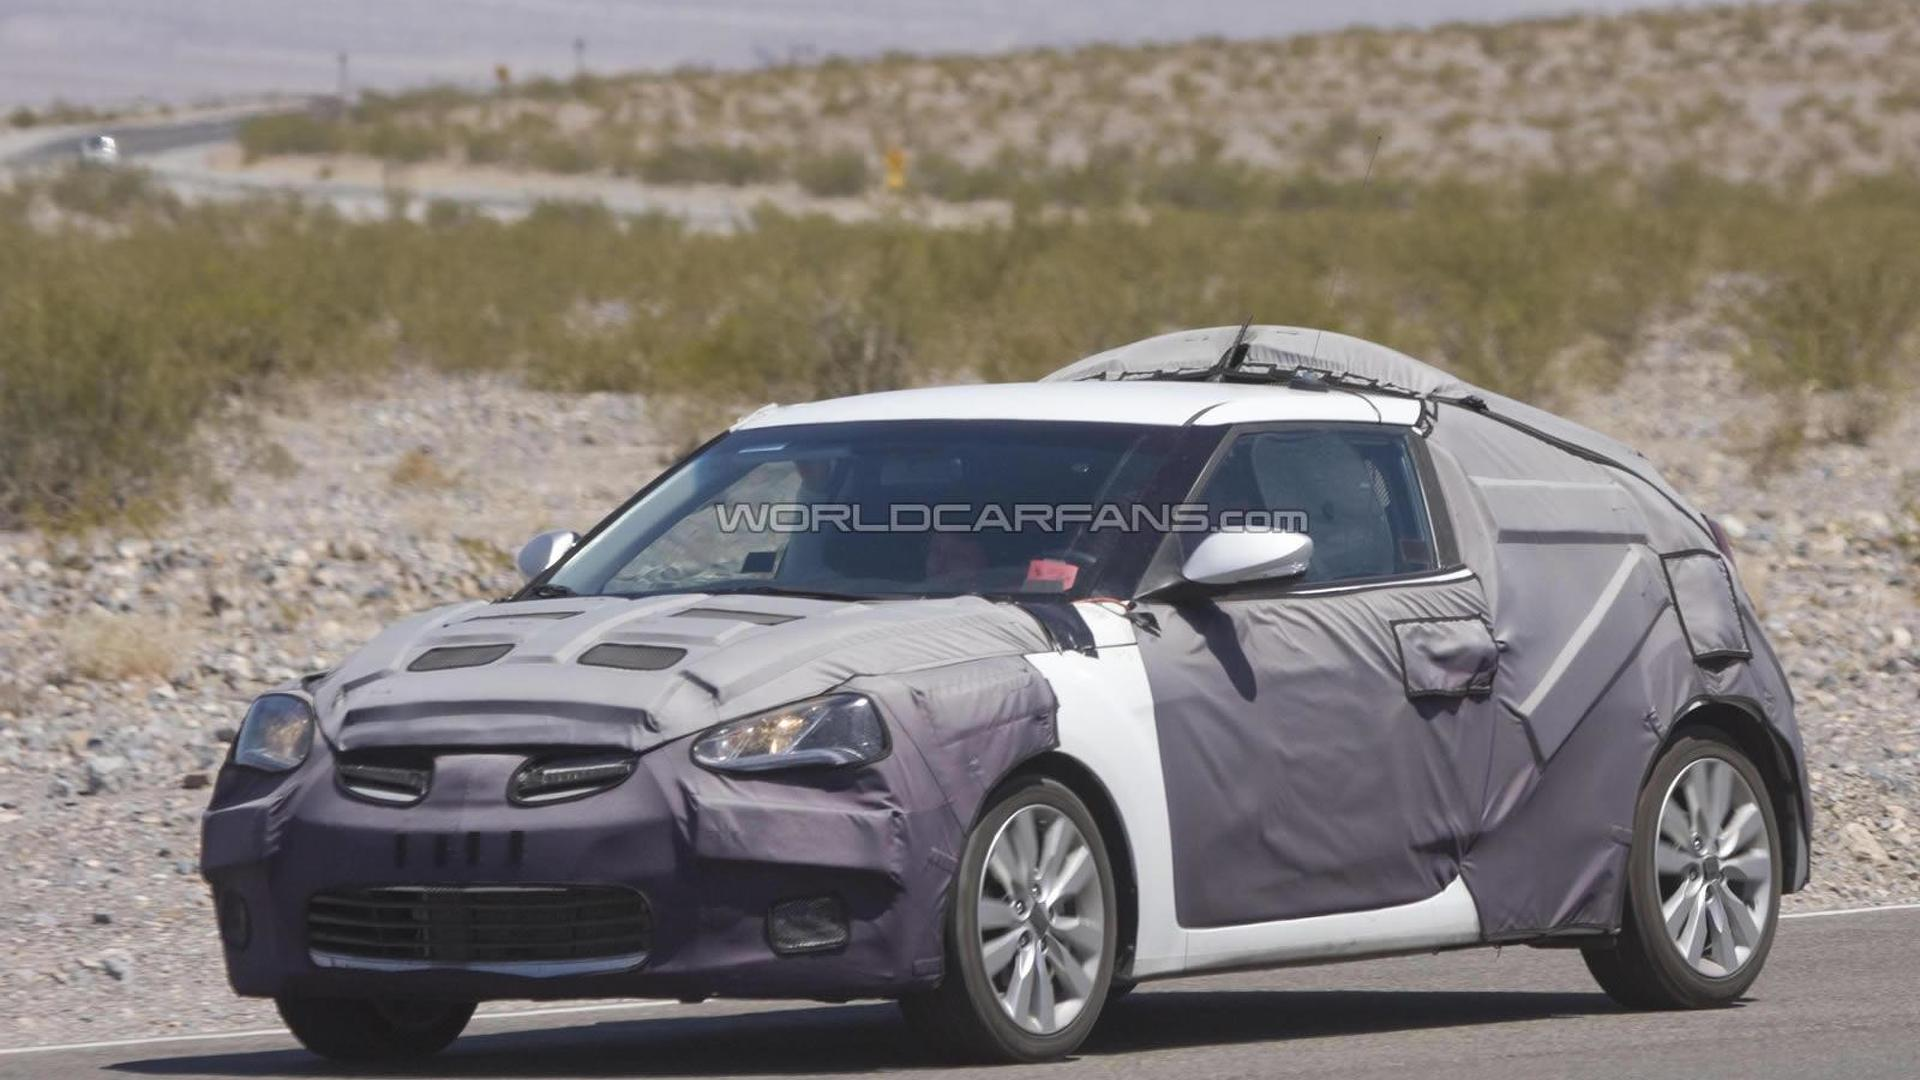 Hyundai Veloster headed to Detroit, Accent to New York show